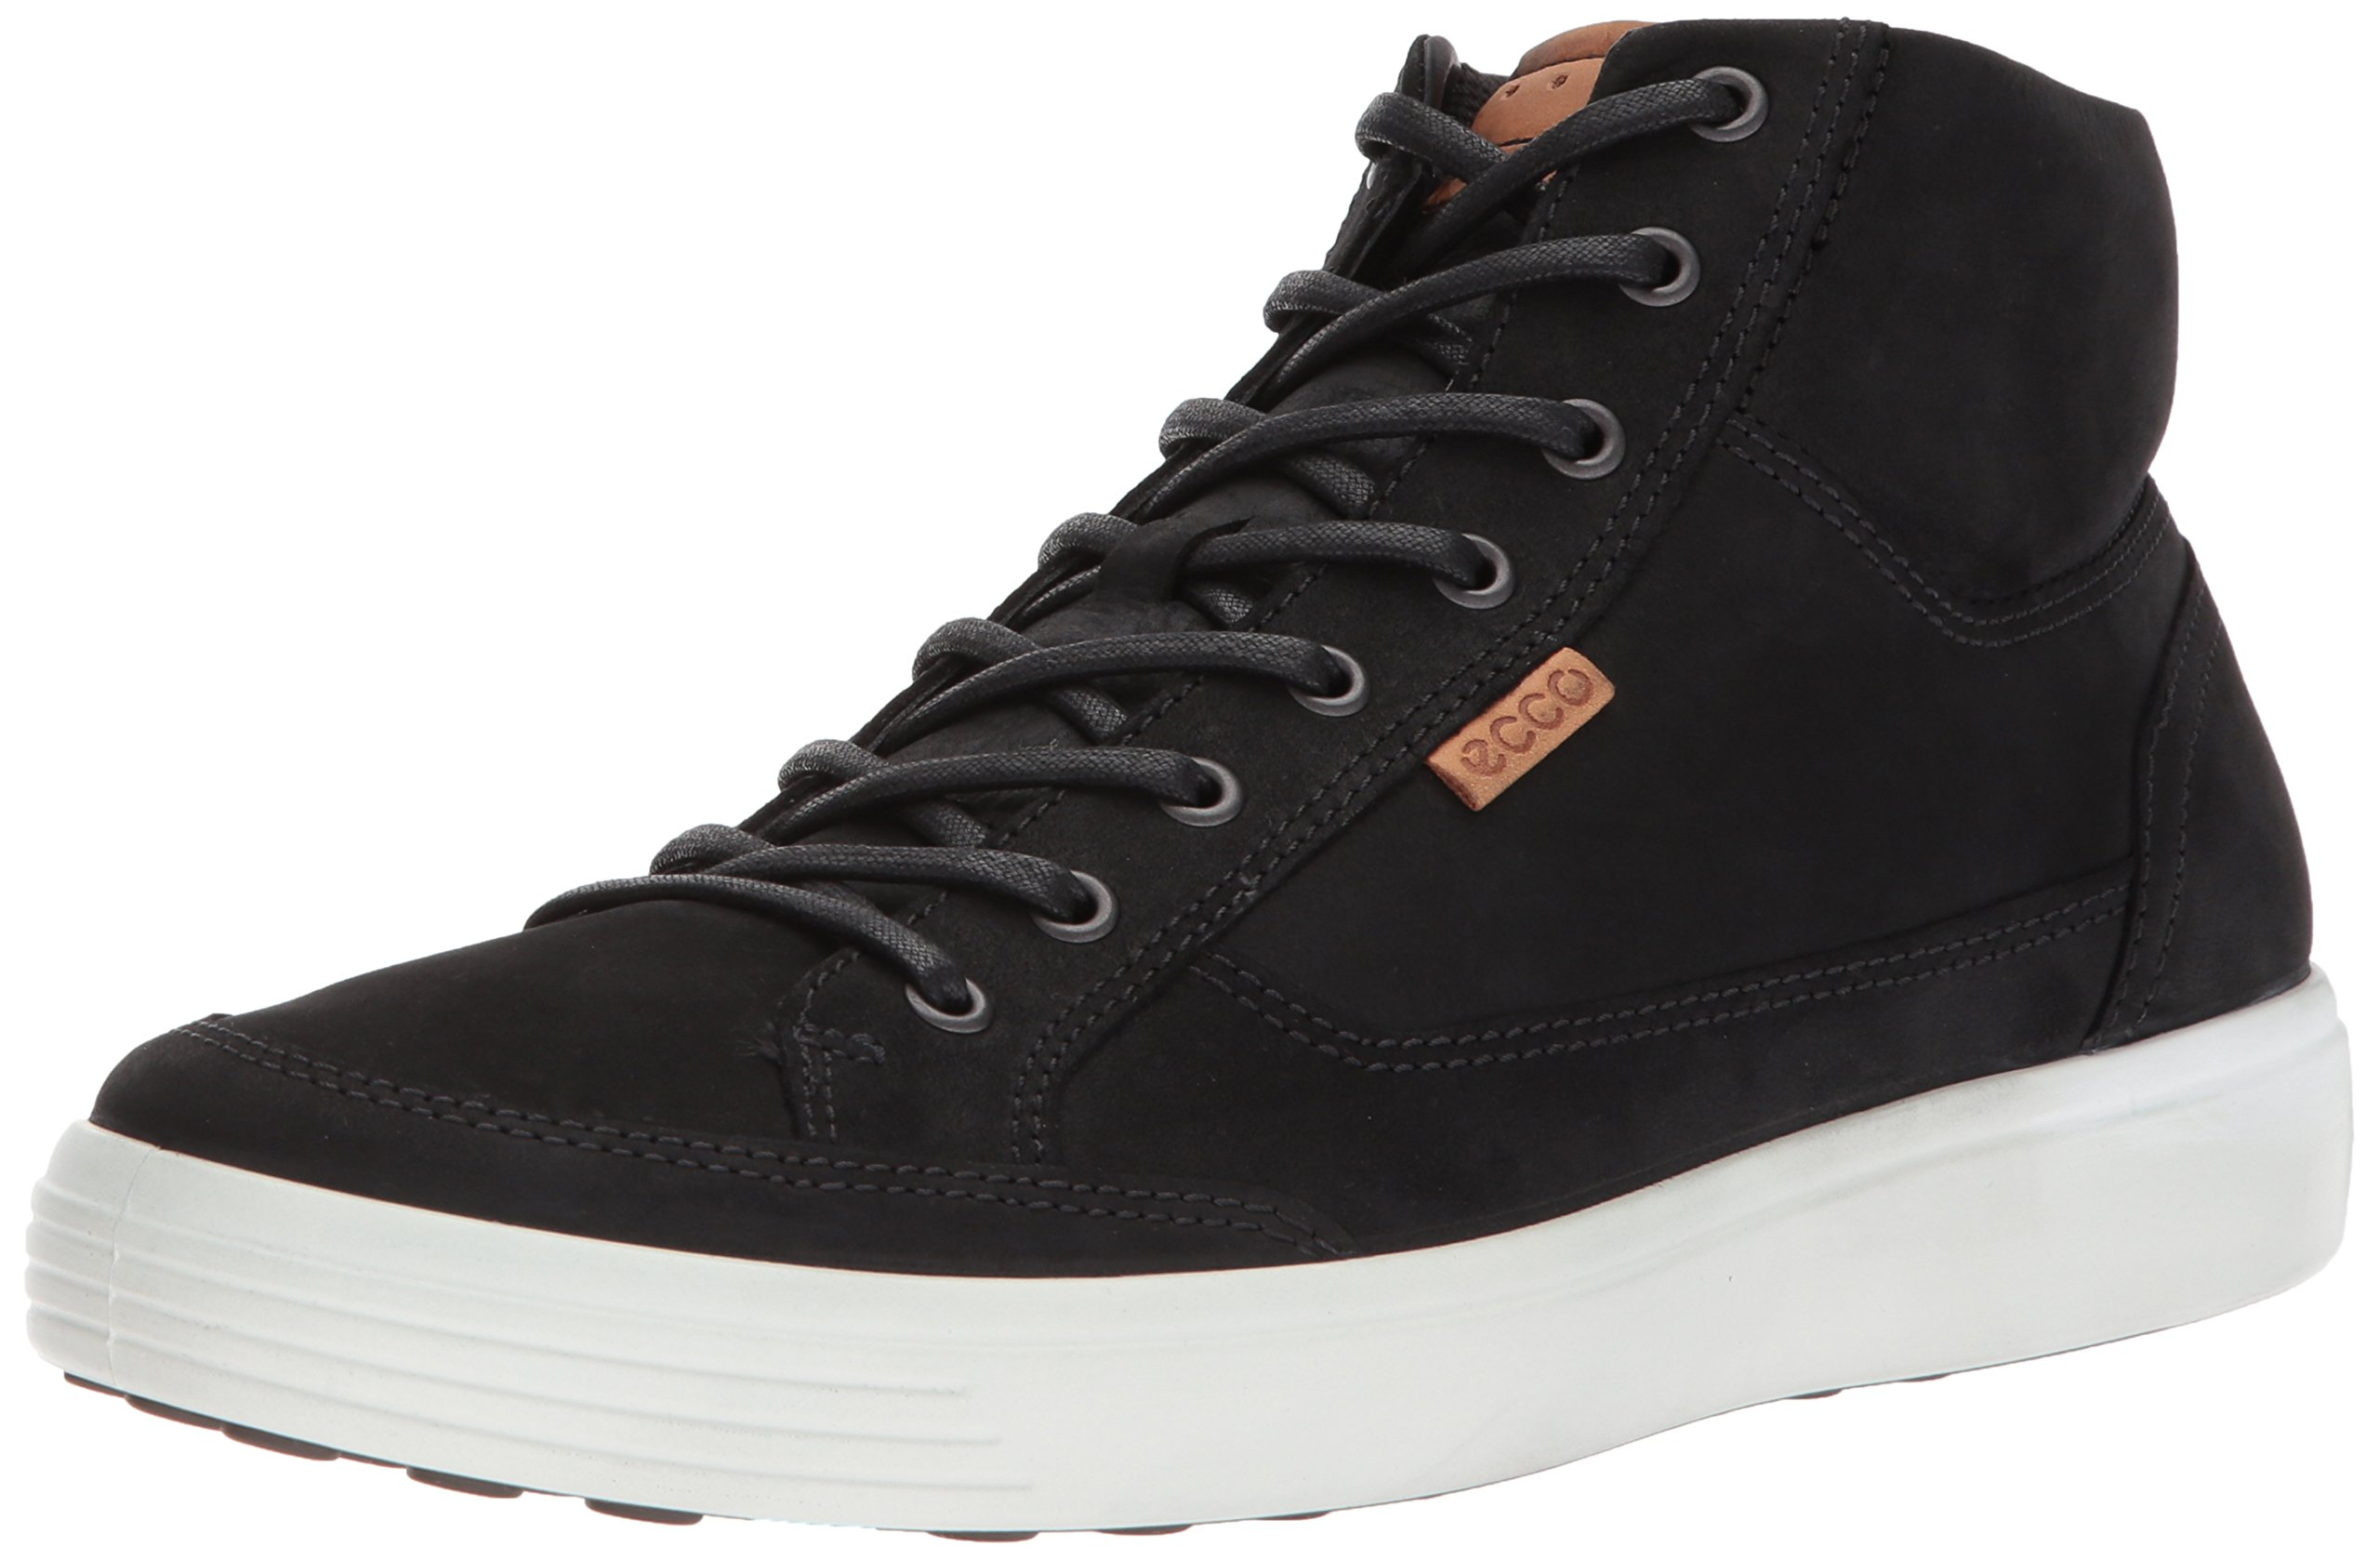 ECCO Men's Soft VII High-top Sneaker